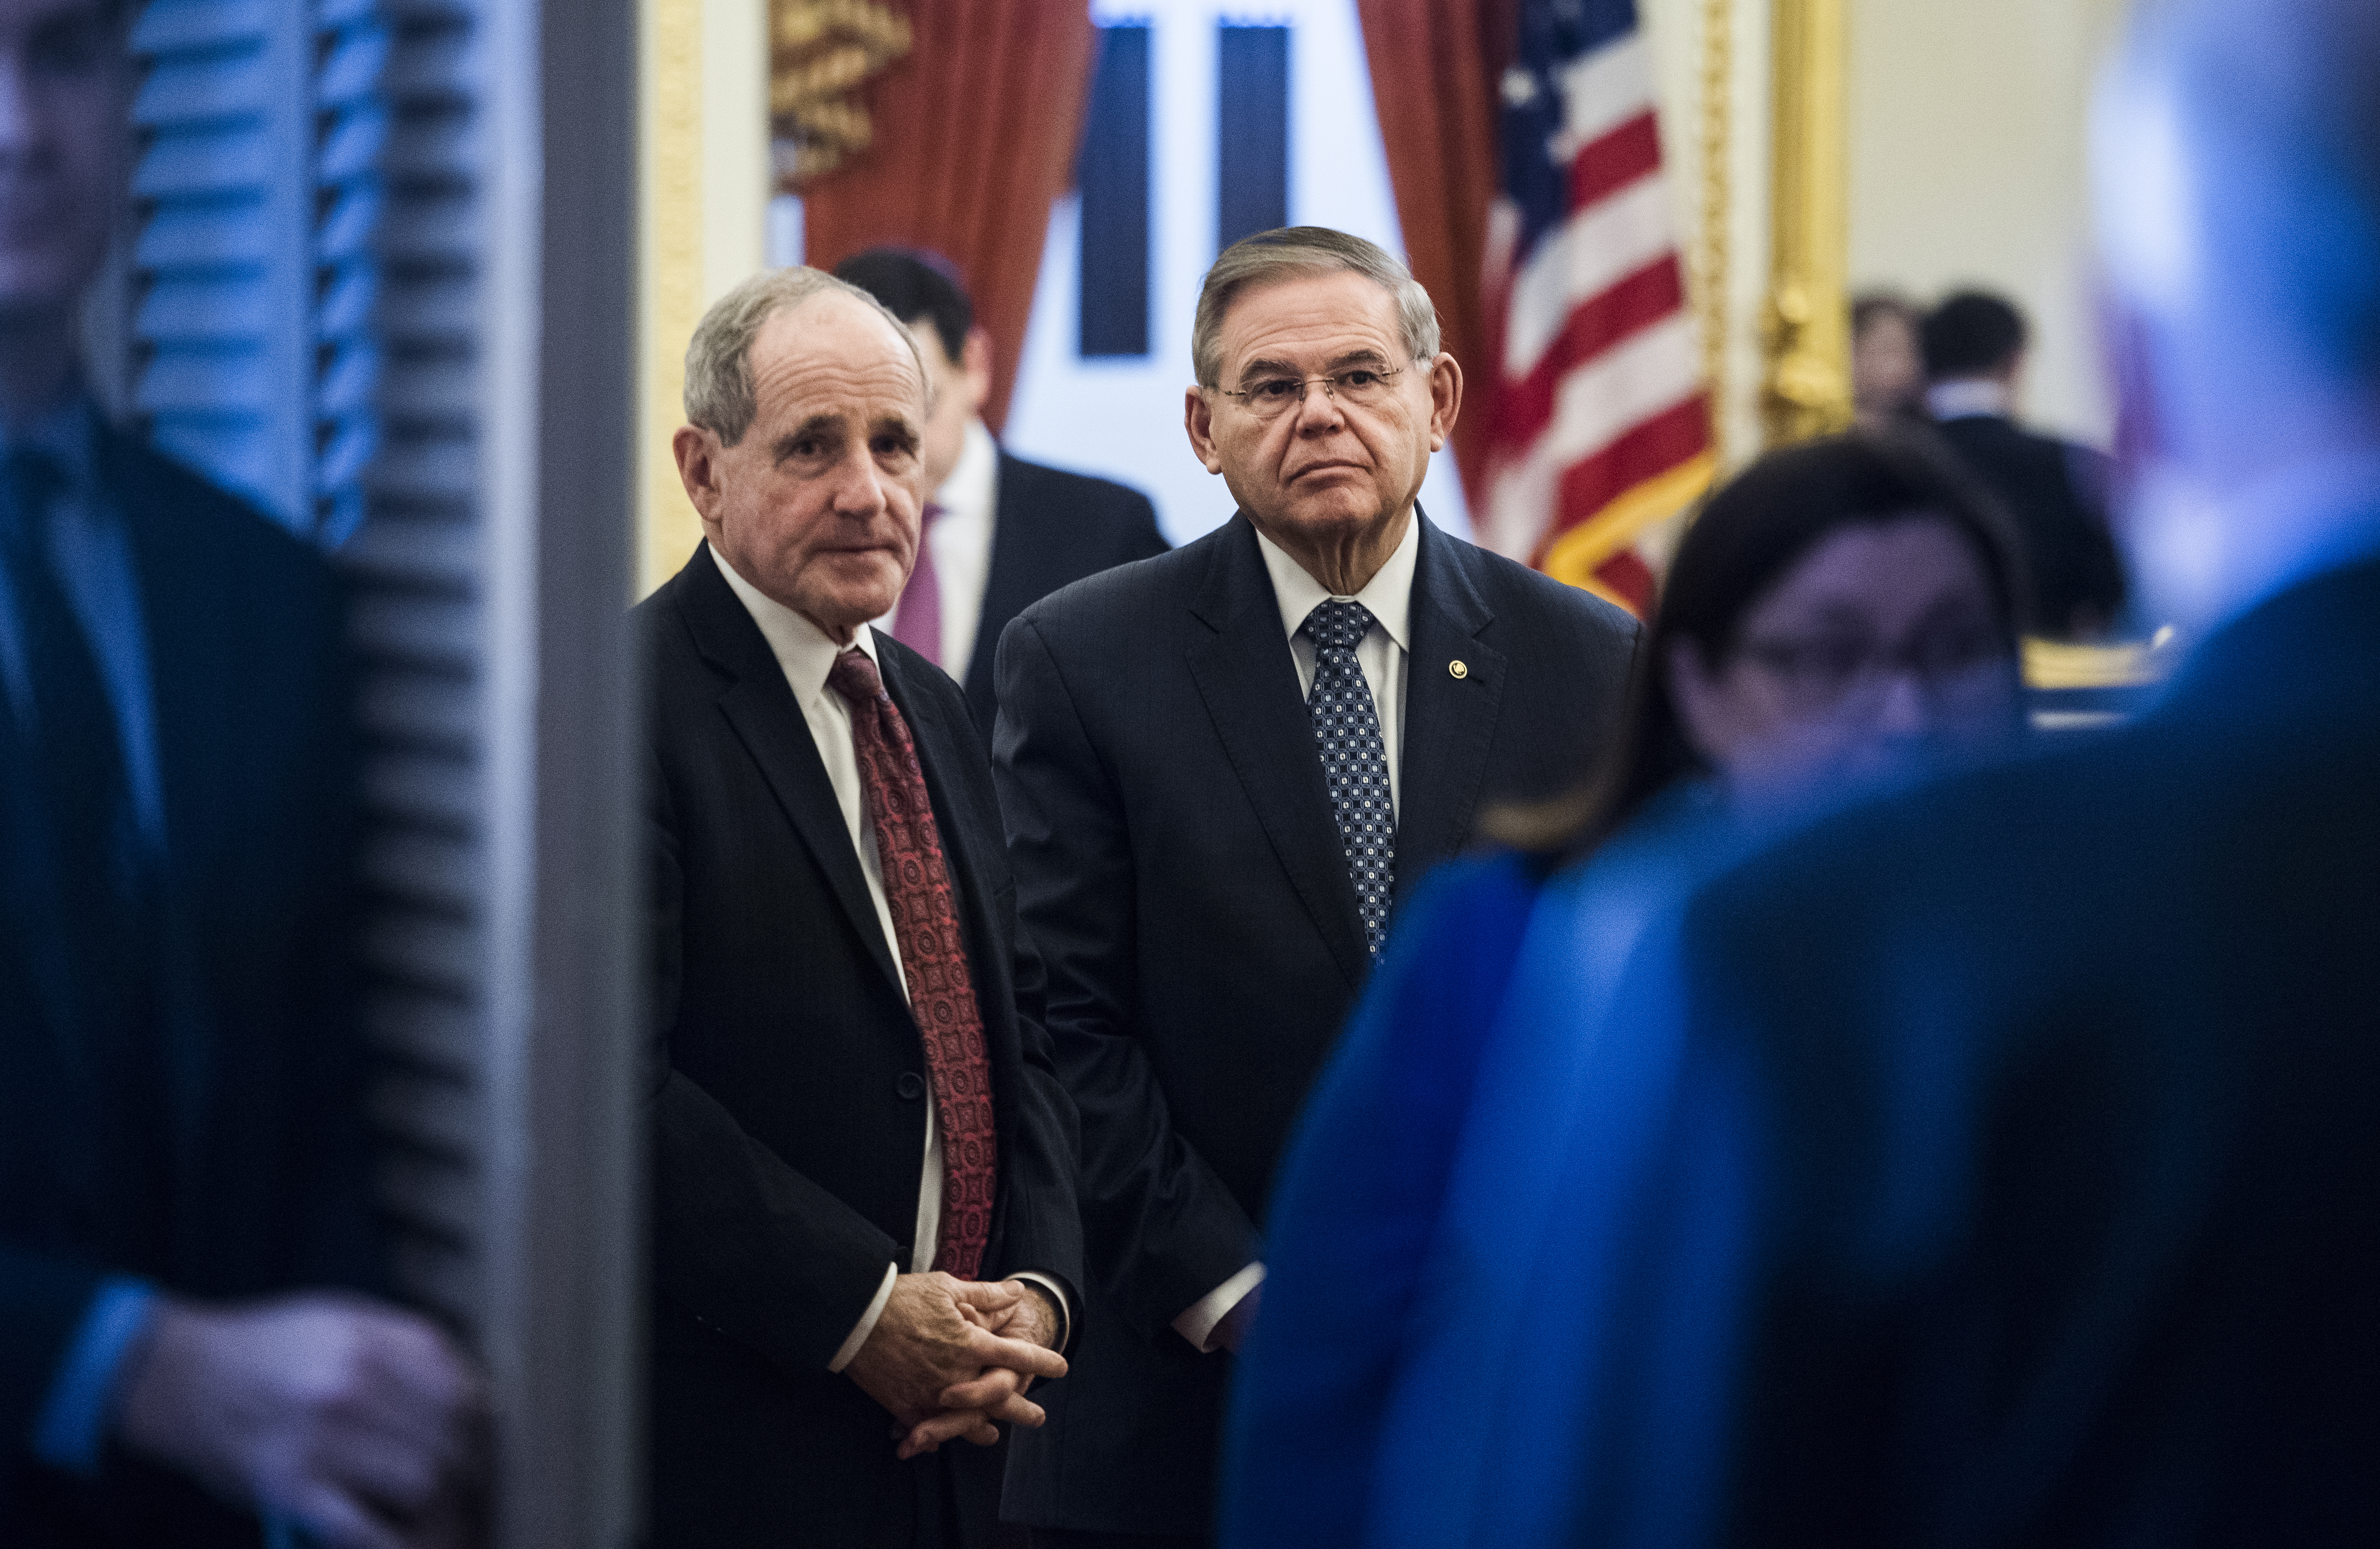 UNITED STATES - FEBRUARY 14: Chairman James Risch, R-Idaho, left, and ranking member Sen. Bob Menendez, D-N.J., wait for the arrival of Colombian President Ivan Duque Marquez to arrive for a meeting with members of the Senate Foreign Relations Committee in the Capitol on Thursday, February 14, 2019. (Photo By Tom Williams/CQ Roll Call)